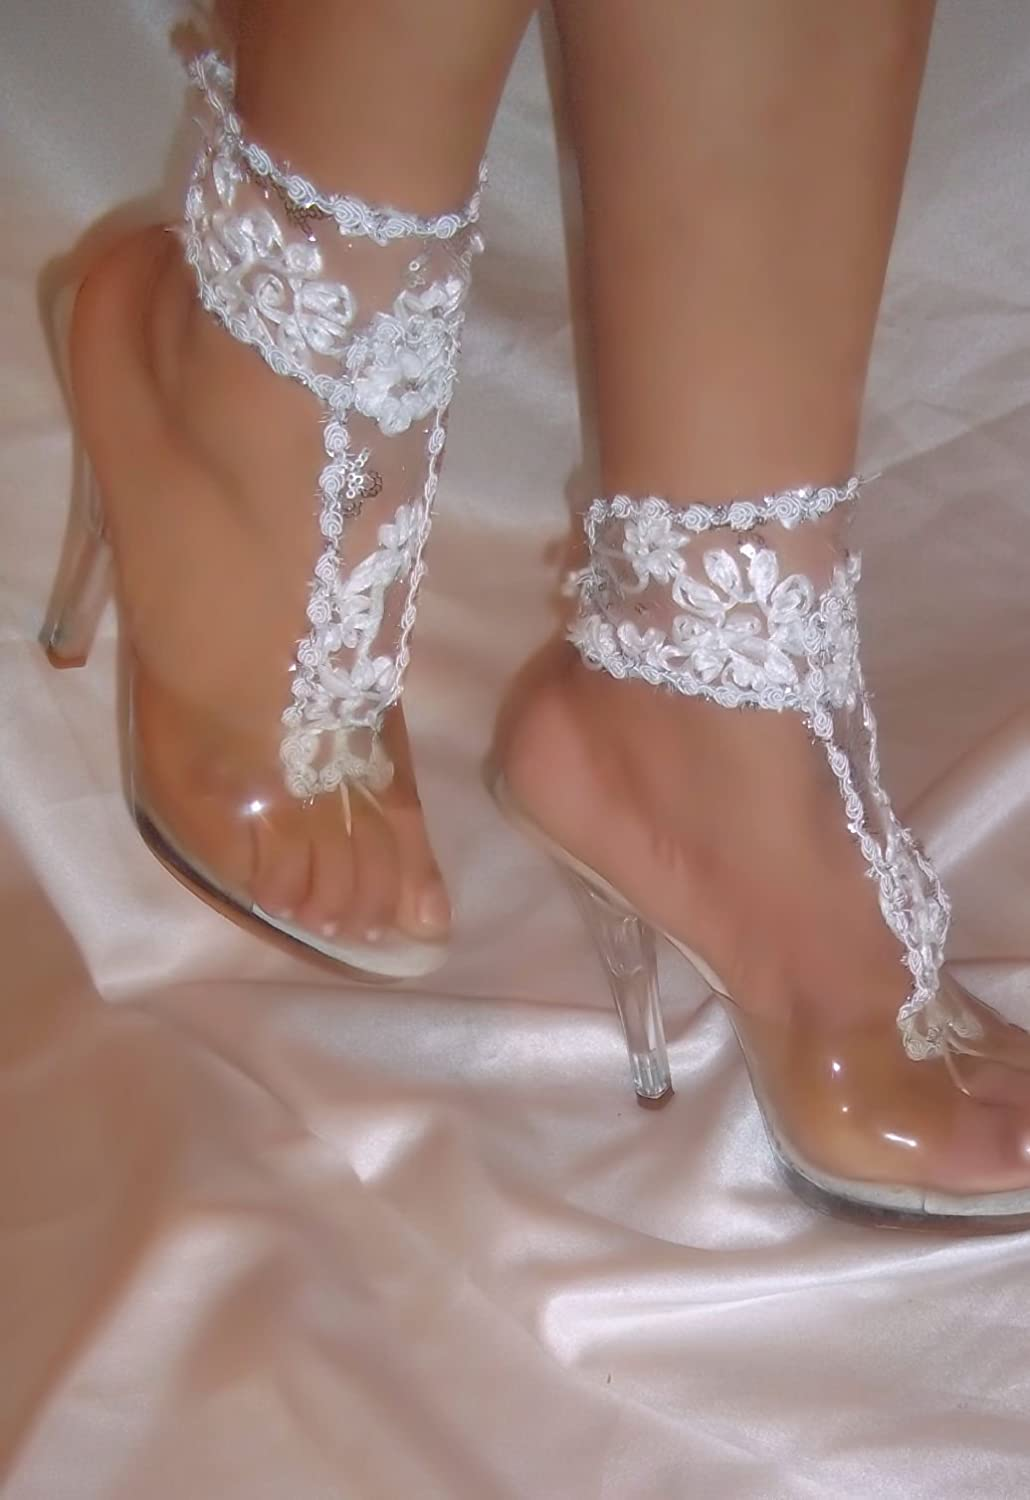 63af6593f1be0 Amazon.com  White Flower Barefoot Sandals